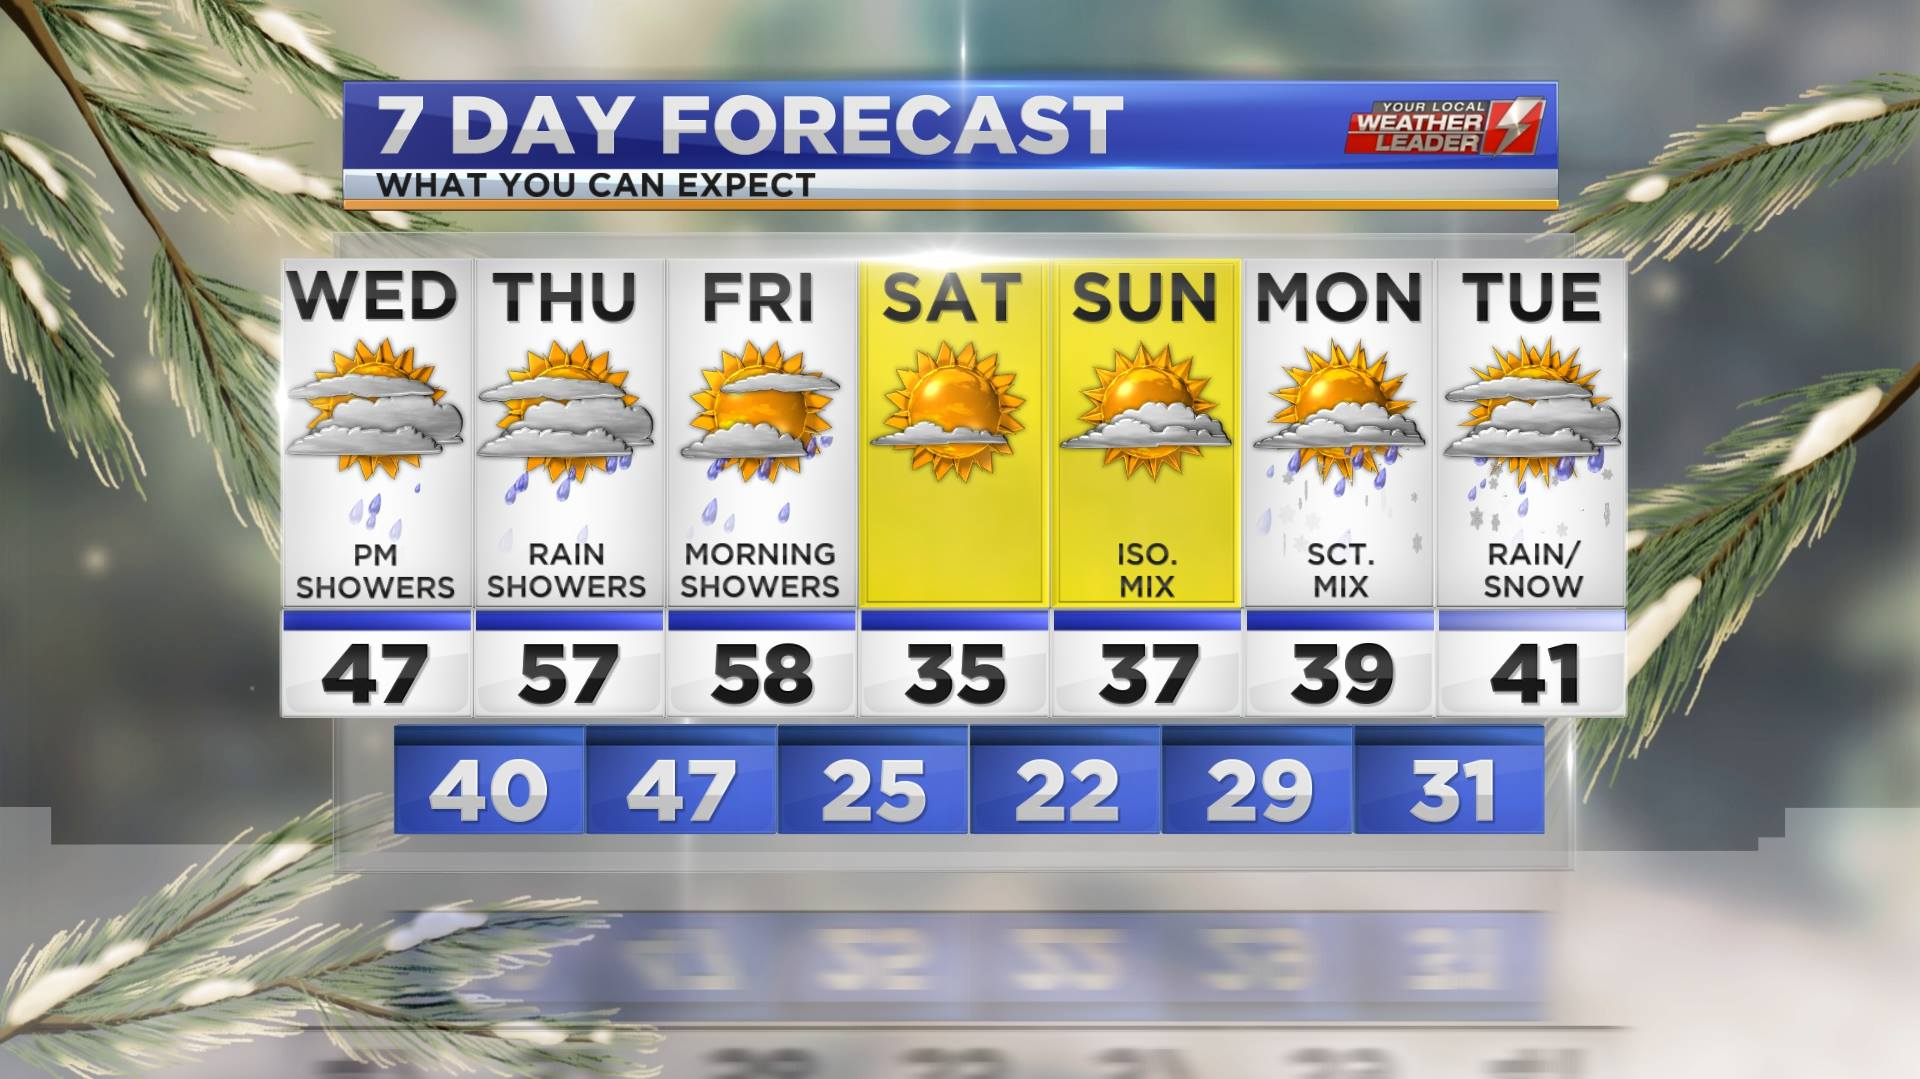 Your 7-day Forecast for Wednesday 06 February 2019